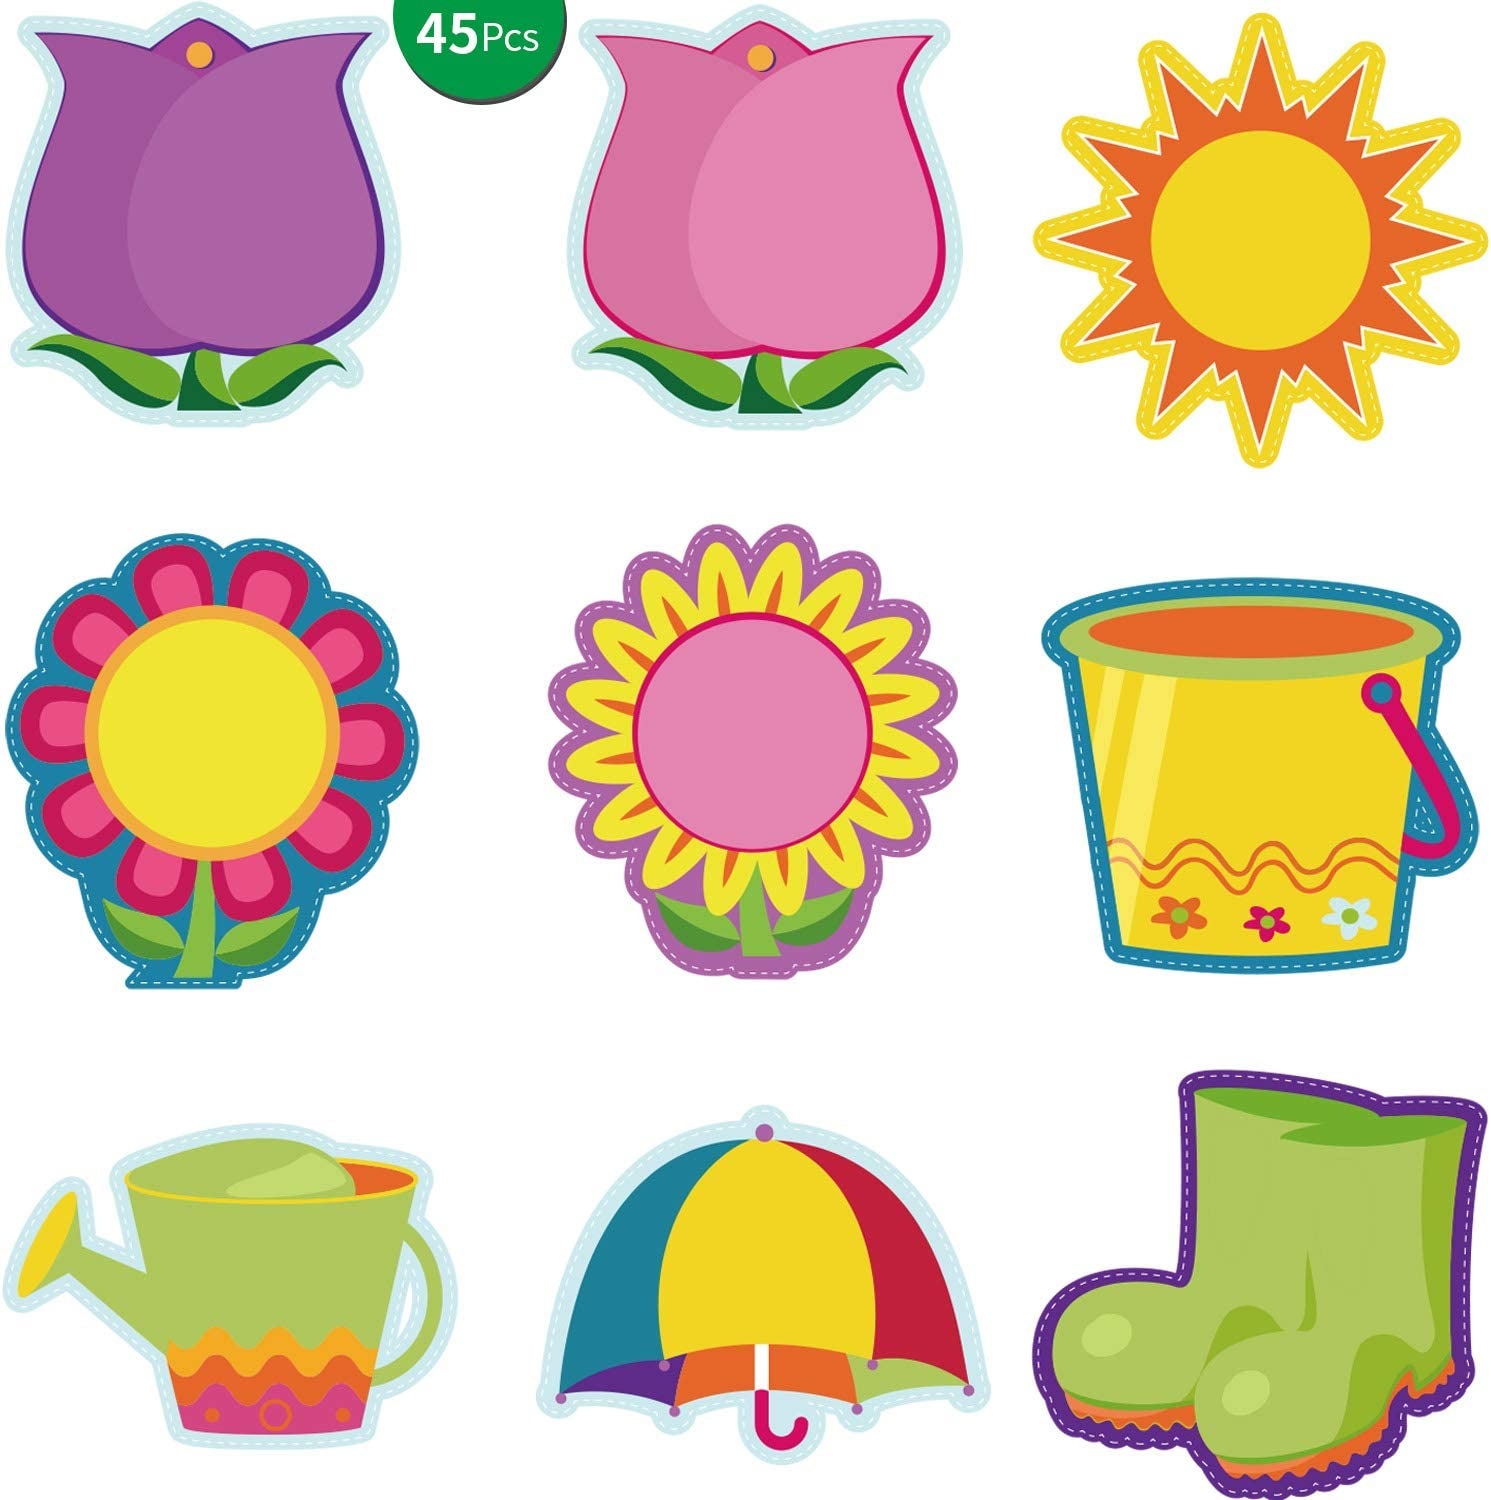 45 Pieces Colorful Spring Mix Cut Outs Classroom Decoration Spring Cutouts with Glue Point Dots for Bulletin Board Classroom School Spring Party Decorations, 5.9 x 5.9 Inch